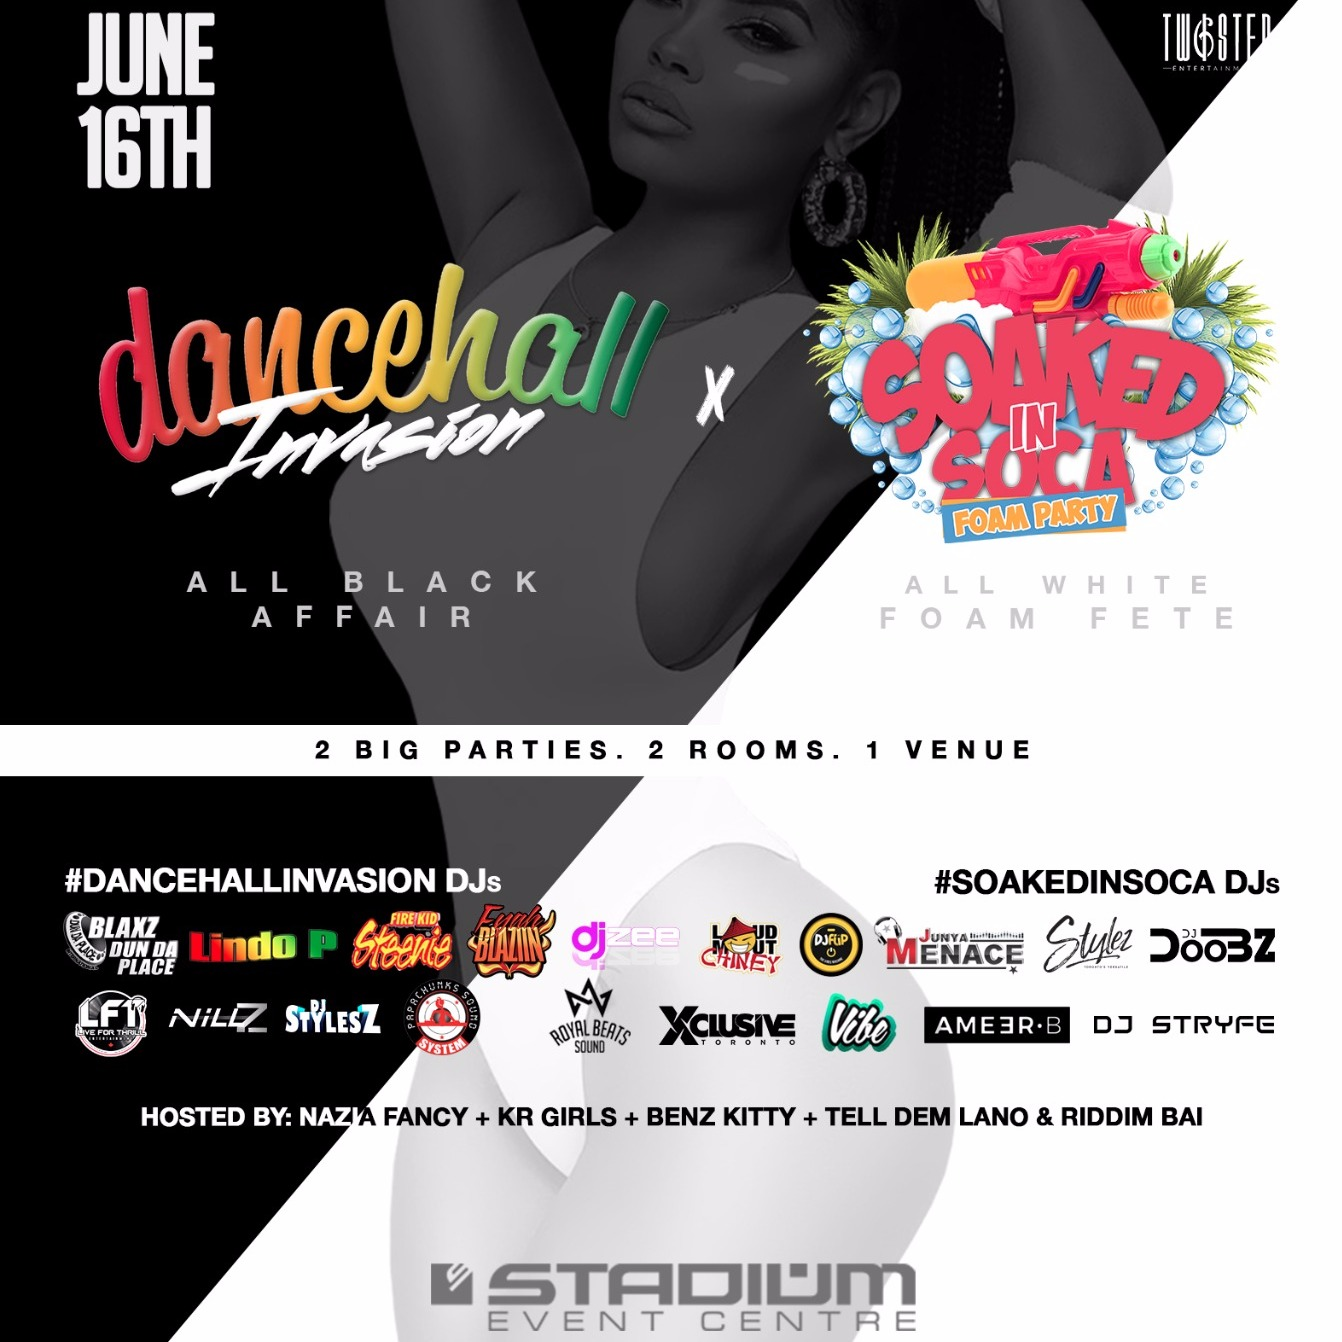 Dancehall Invasion: All Black Affair  x Soaked In Soca: All White FOAM Fete